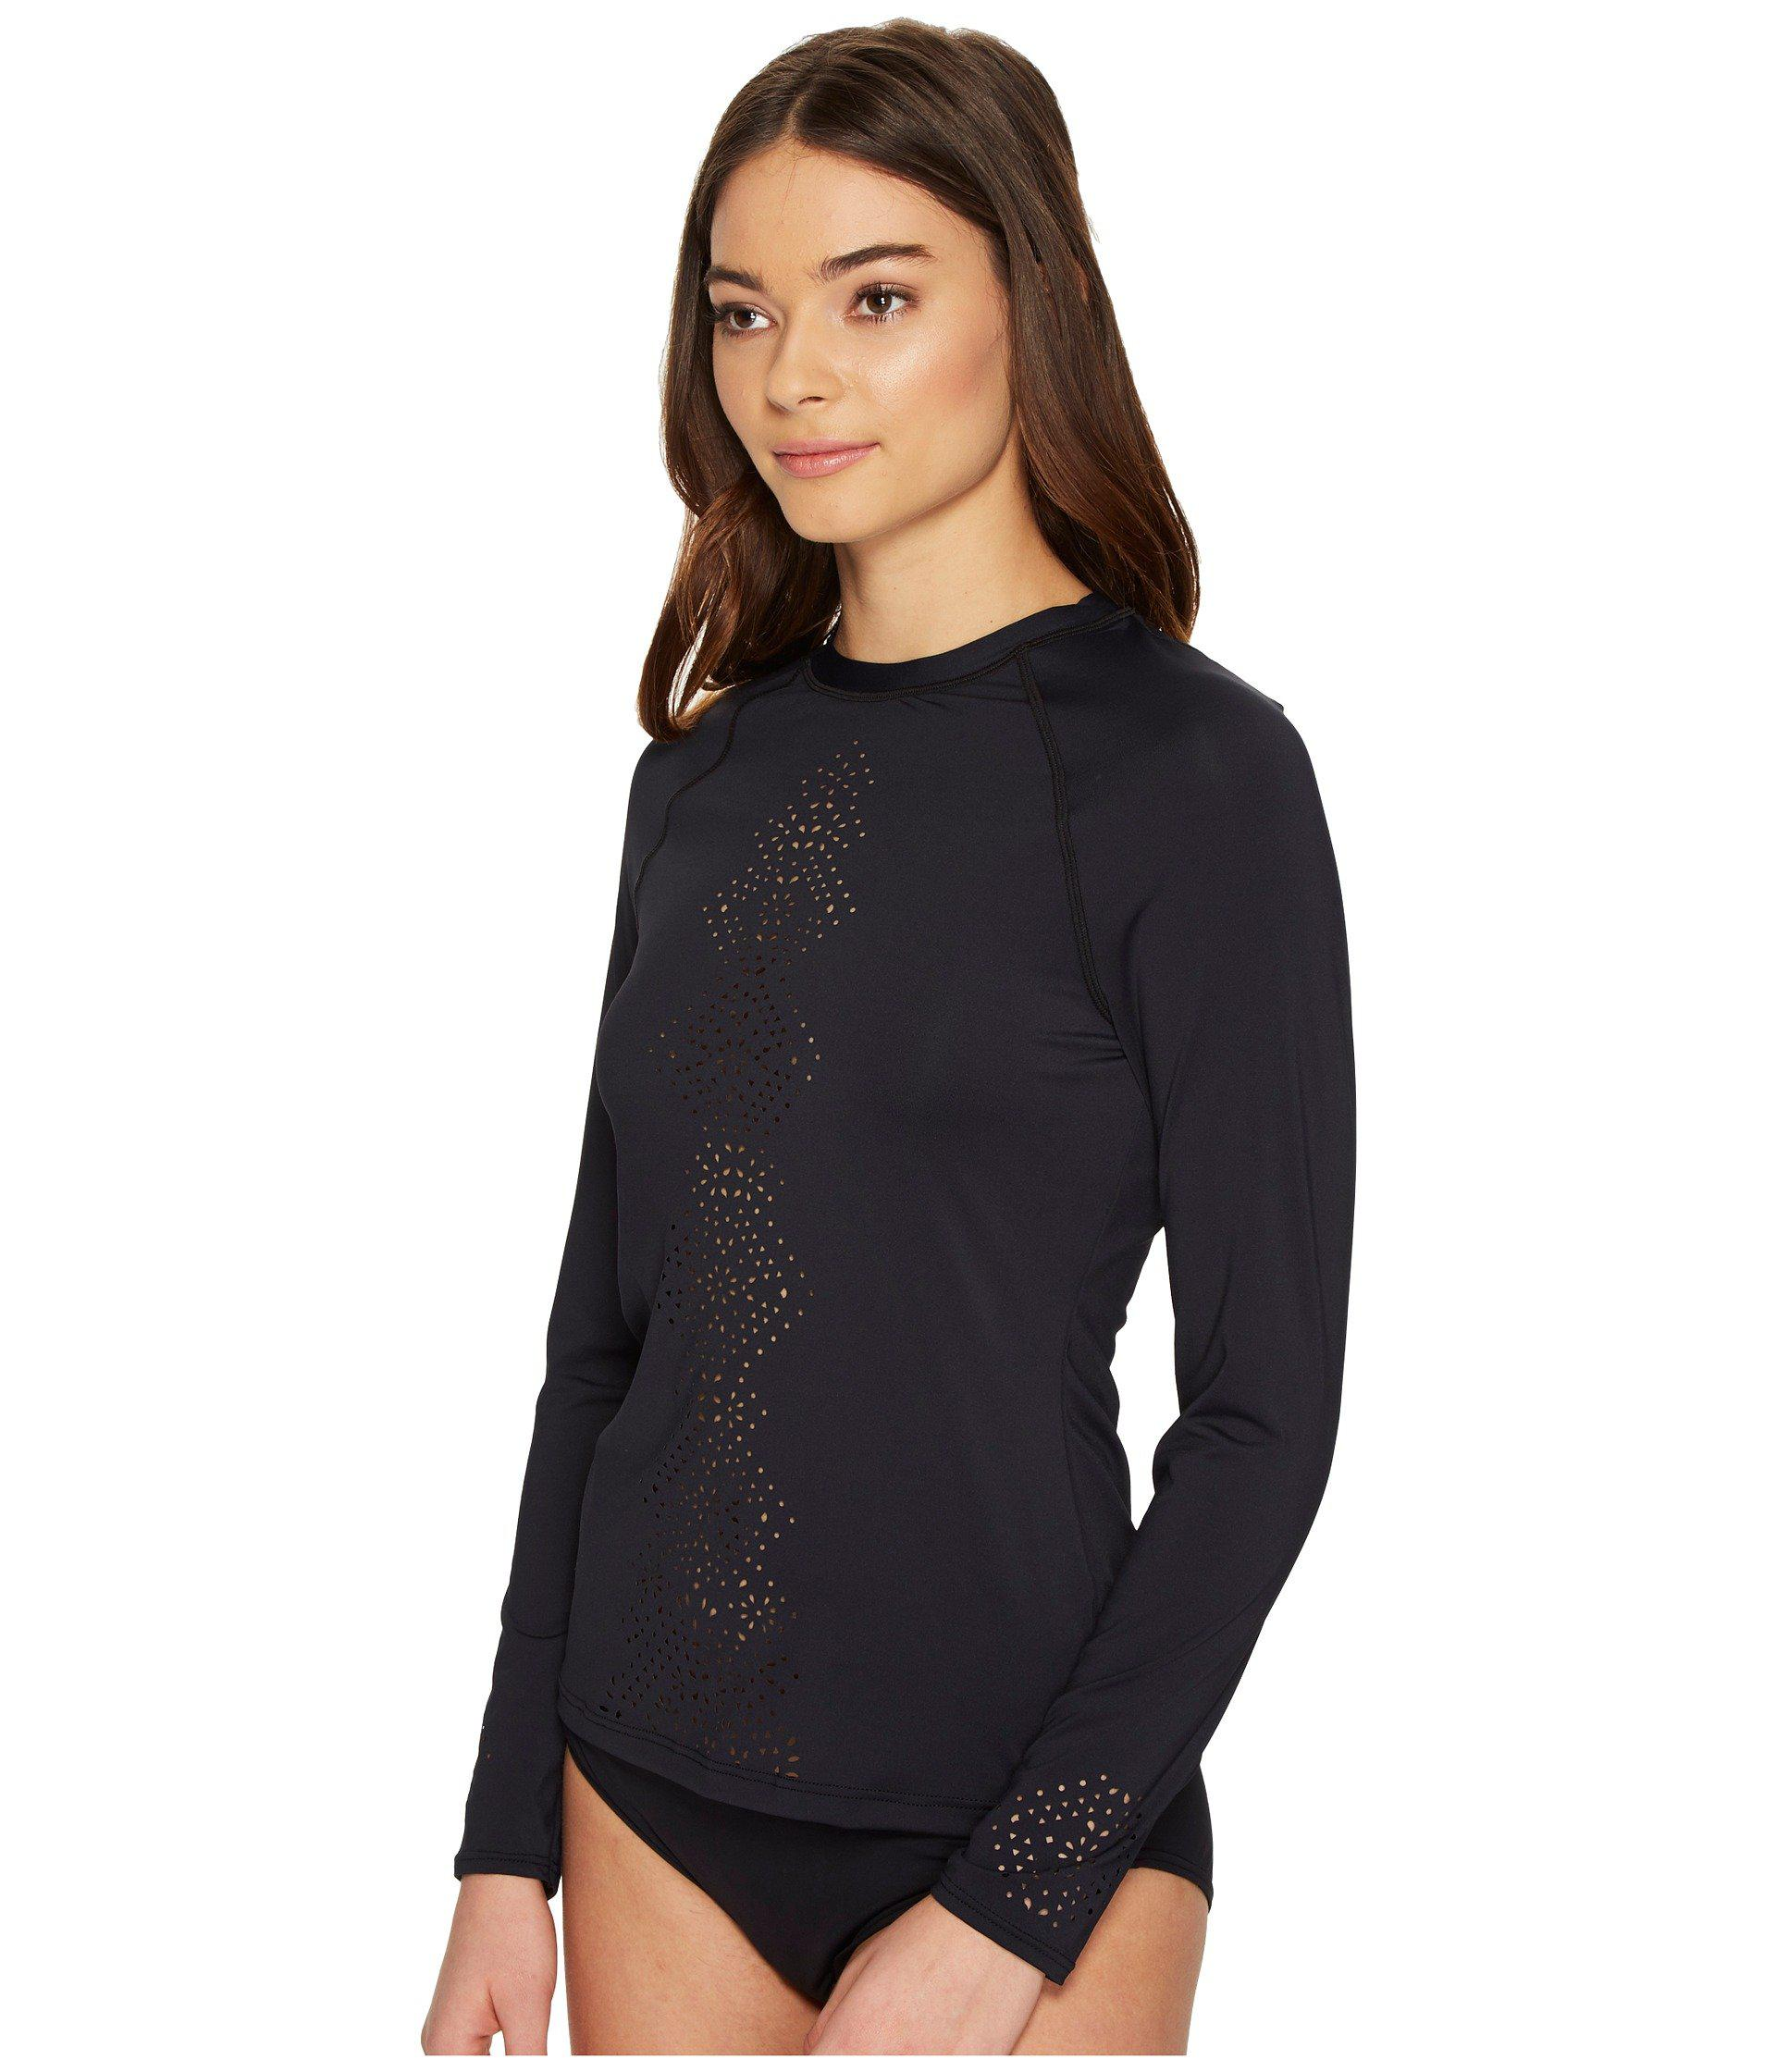 ec18af44a89f6 Lyst - Seafolly Spice Temple Long Sleeve Sunvest in Black - Save 36%